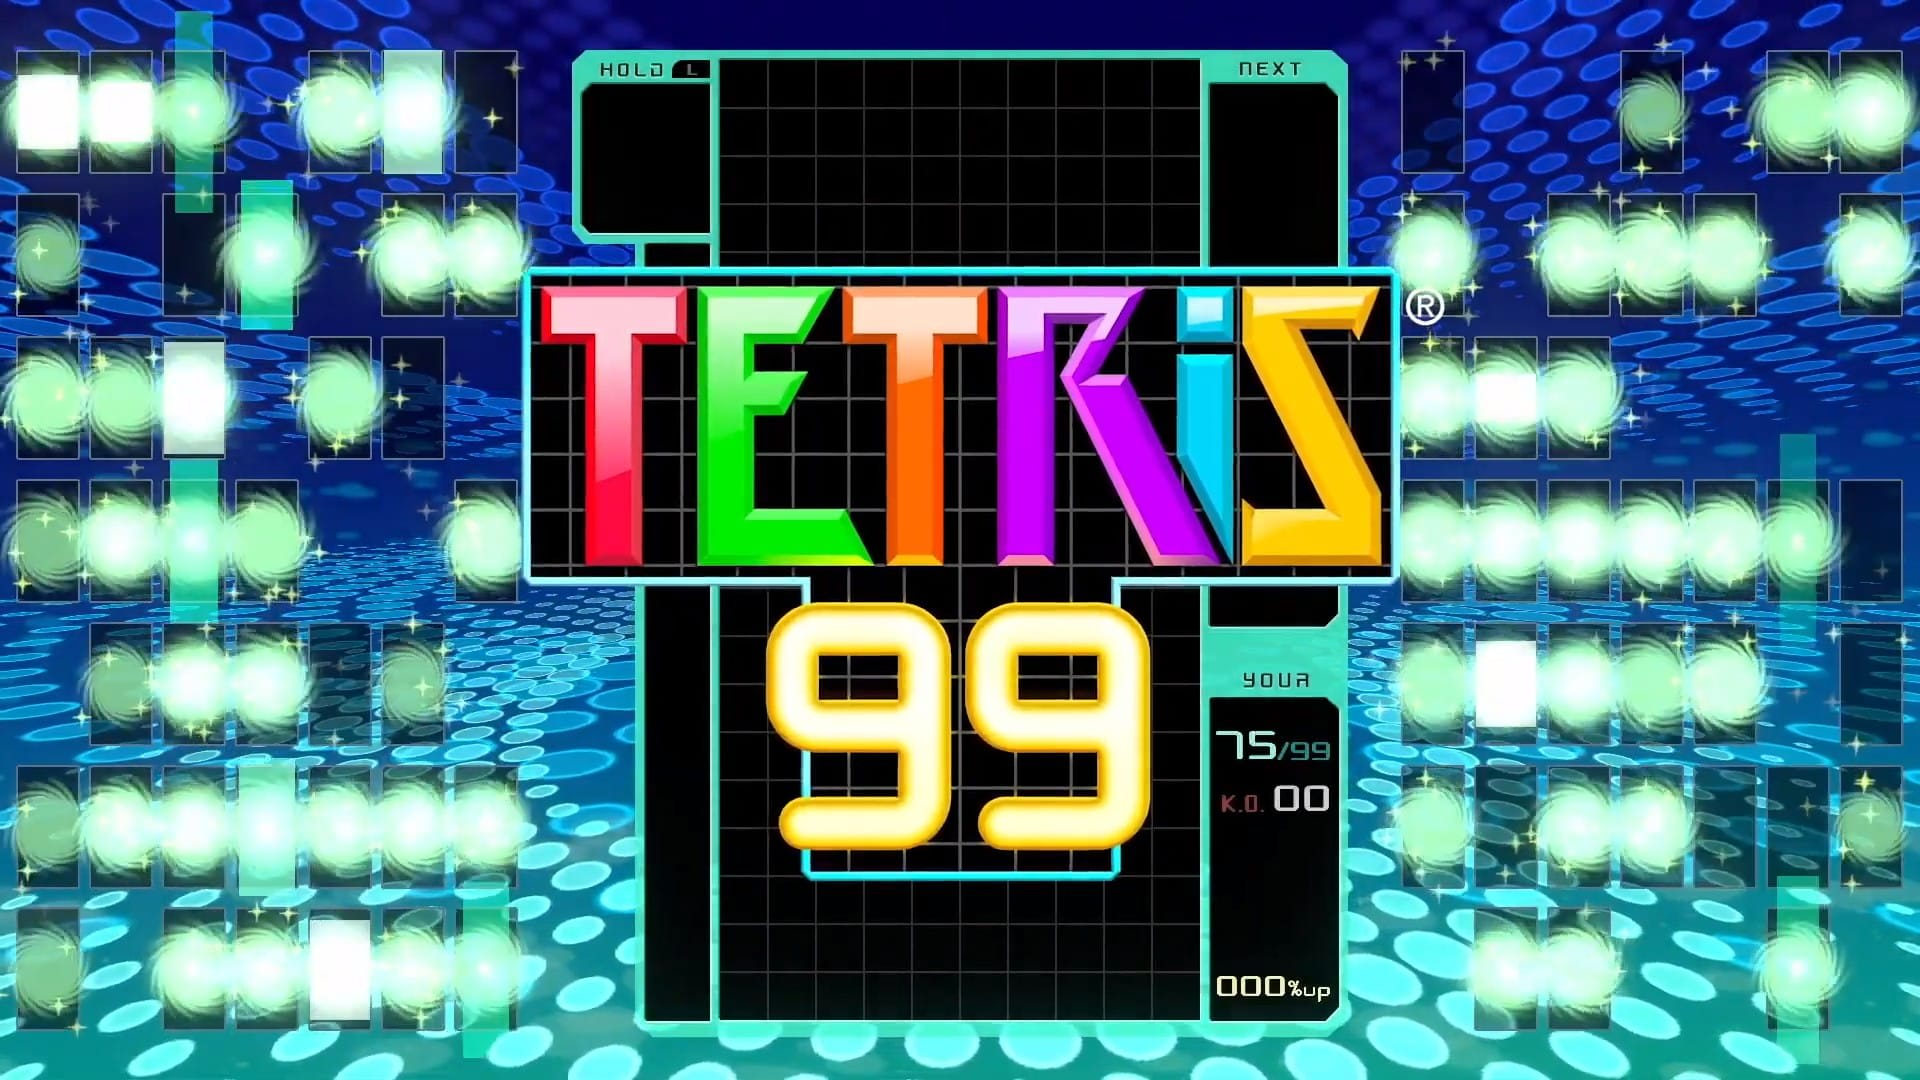 Tetris' is now a battle royale game exclusive to Nintendo Switch